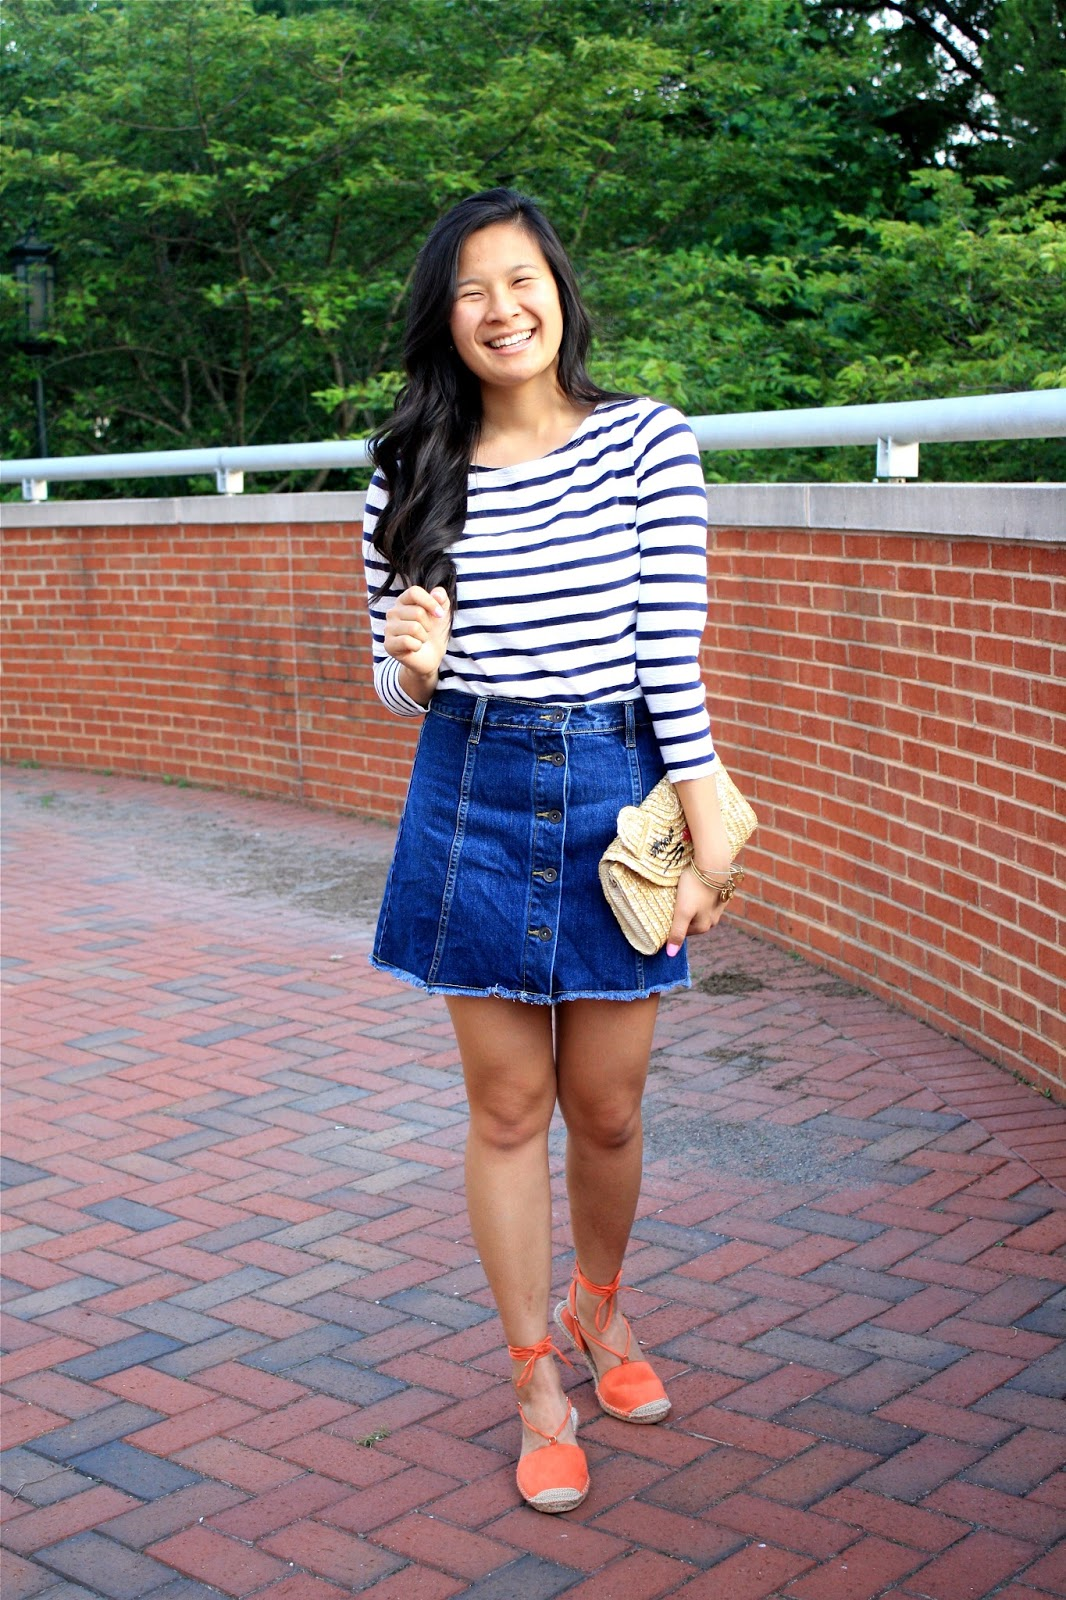 Styling a denim button down skirt for summer